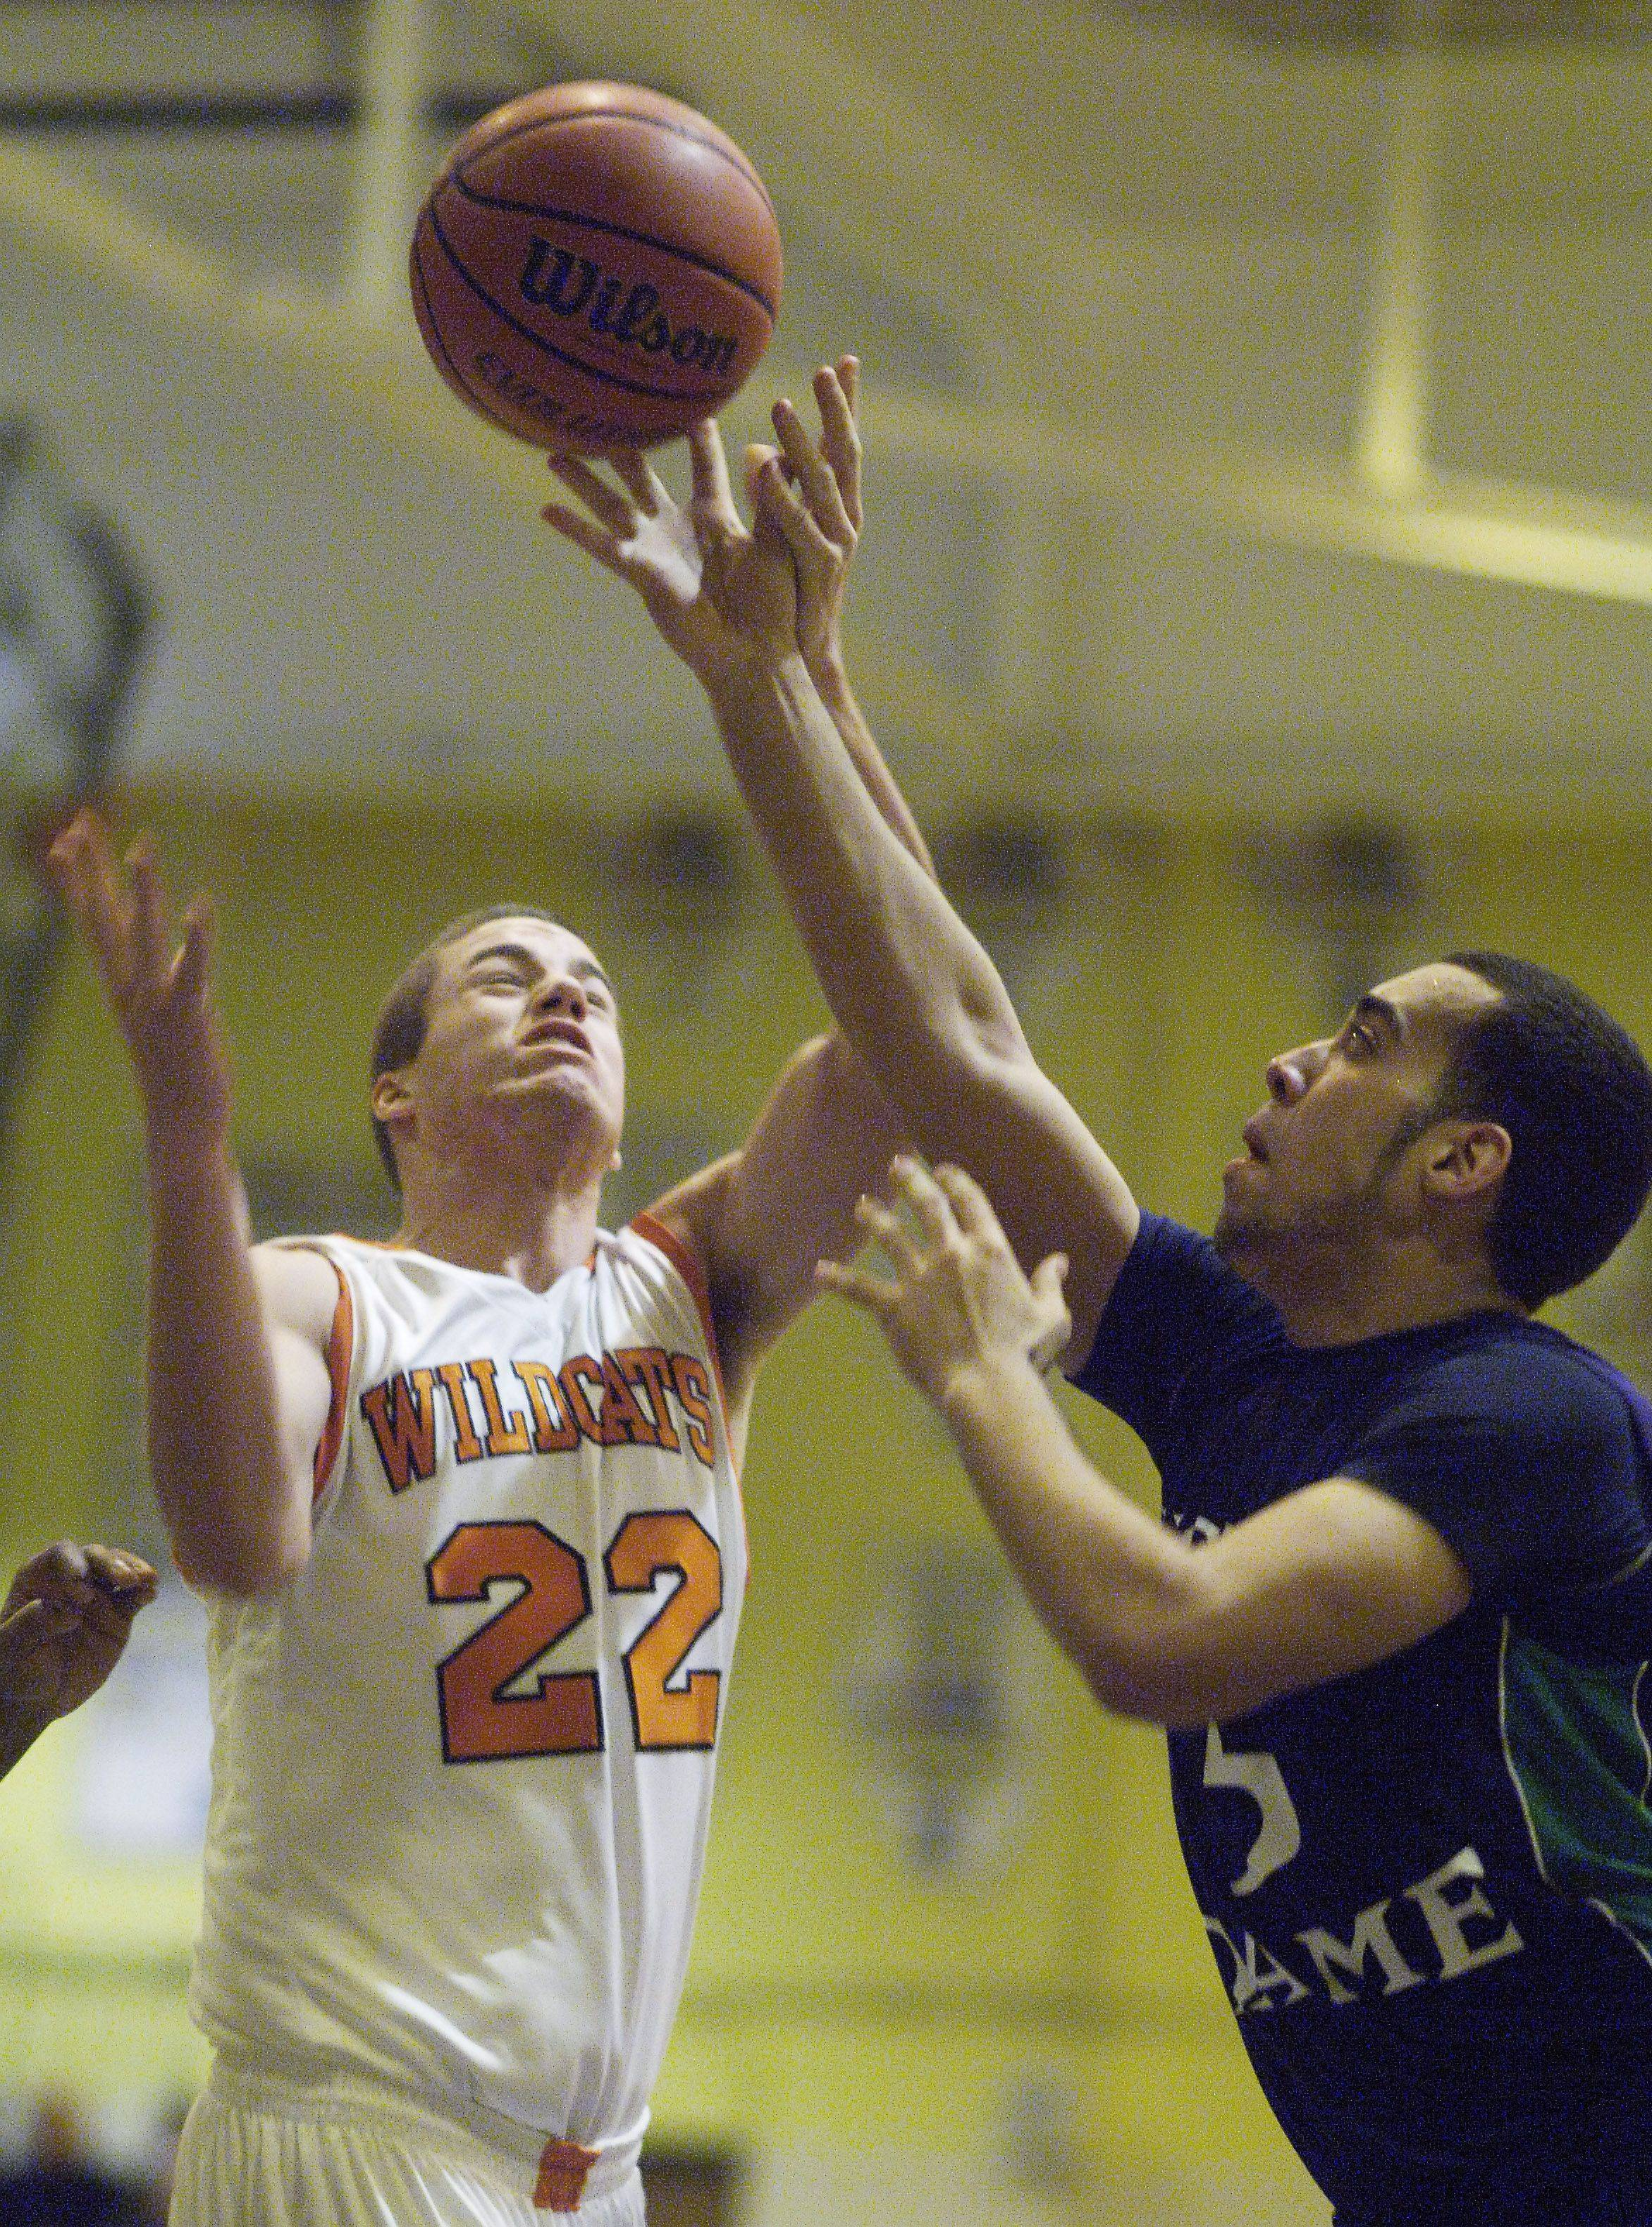 Images: Libertyville vs. Notre Dame boys basketball